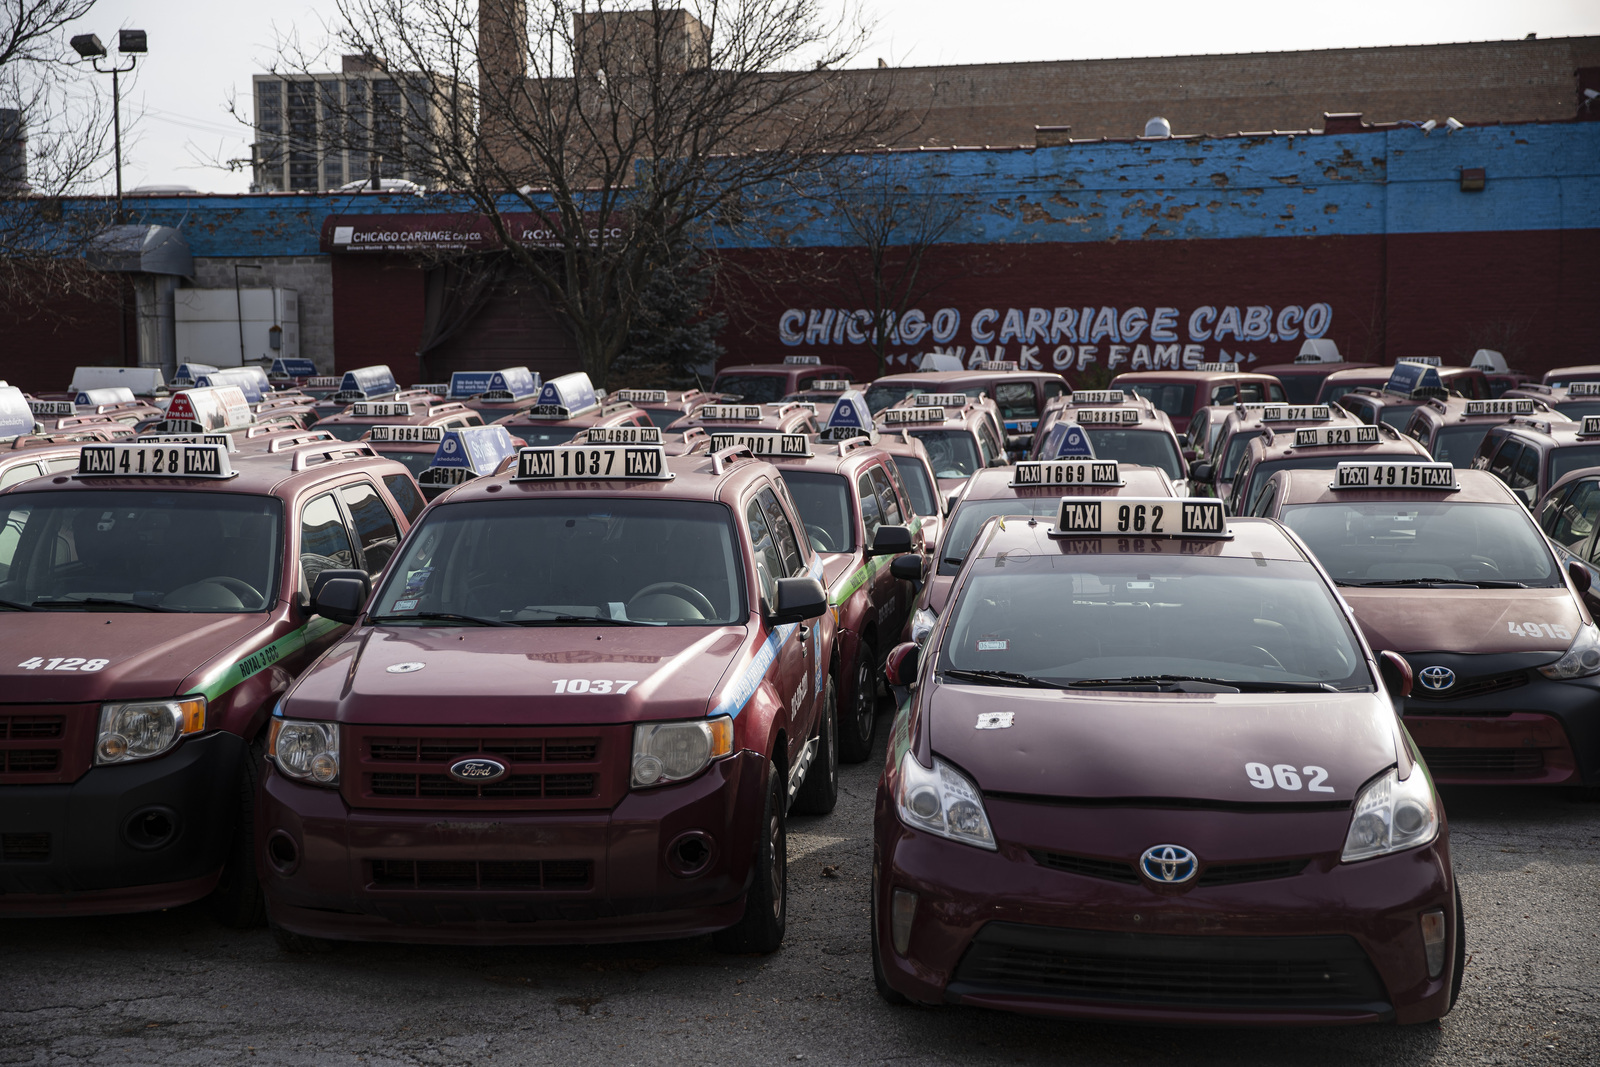 Cabs that were part of Symon Garber's taxicab empire sit idle at his Chicago Carriage Cab Co. headquarters at 2617 S. Wabash Ave. He has sold the property to a developer, and no one is even answering the phones there any longer.